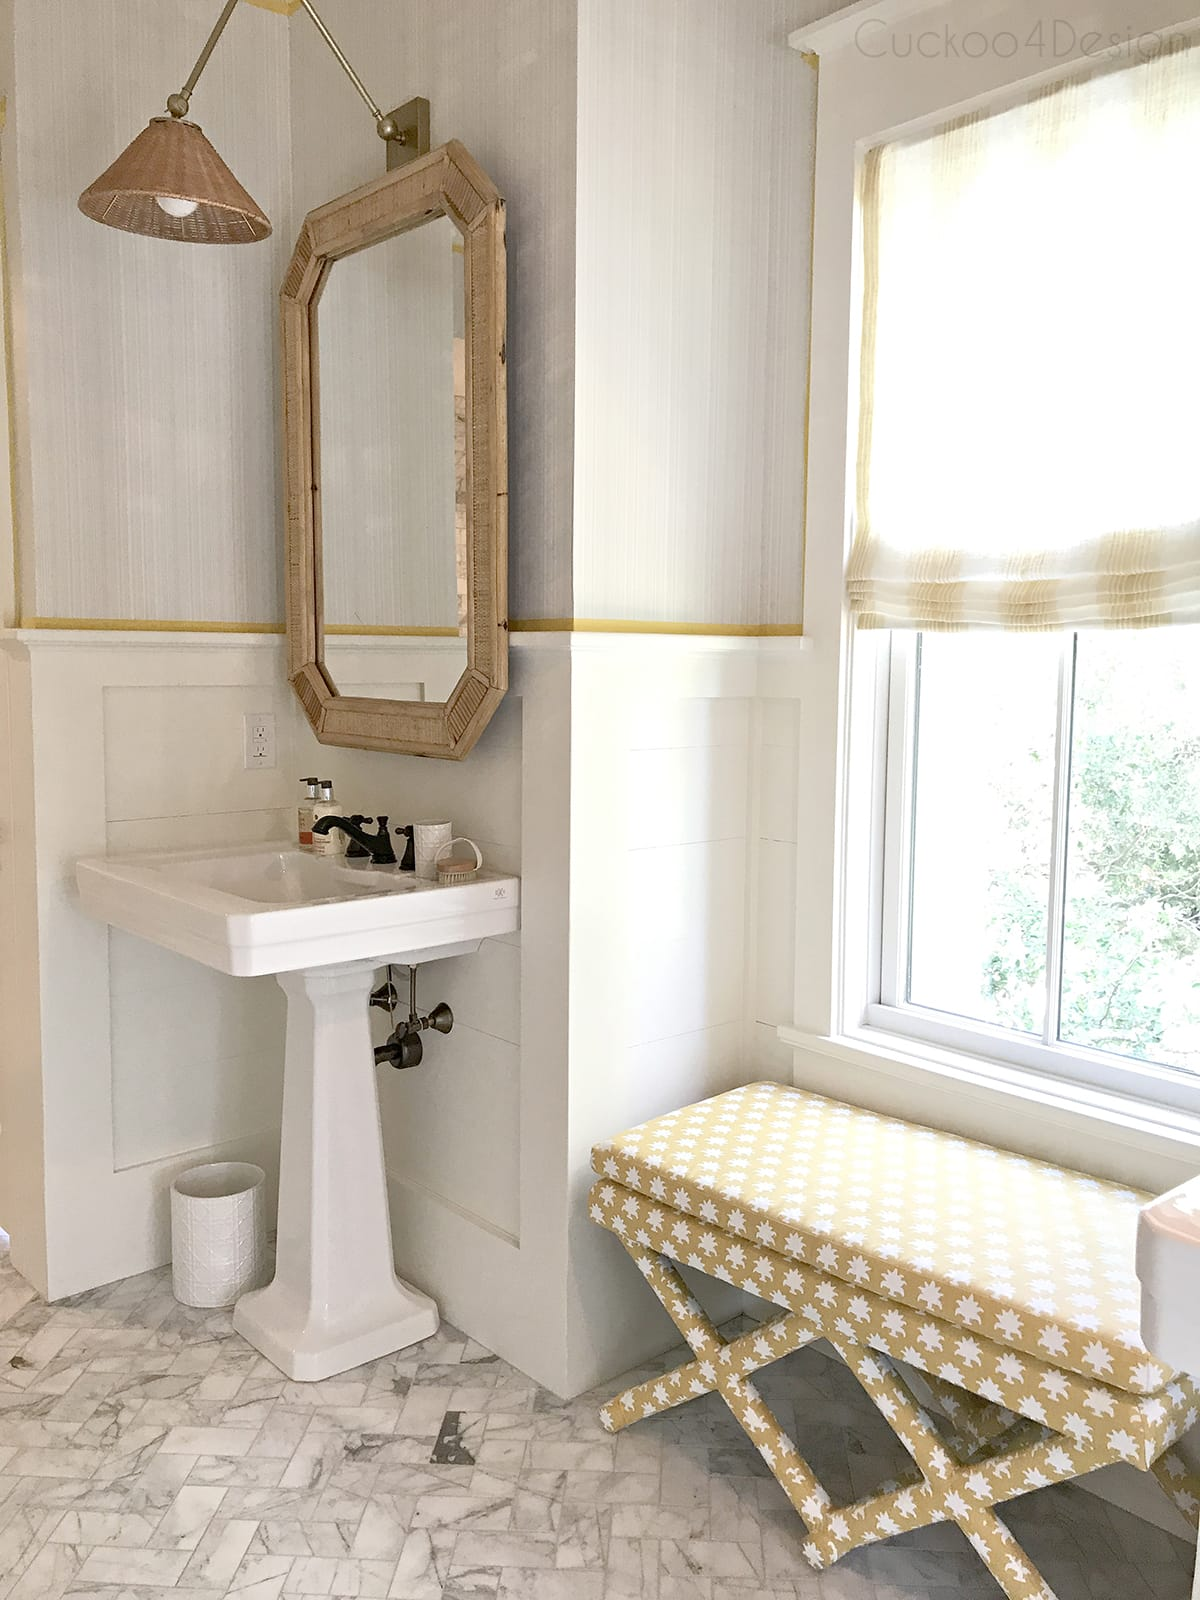 x-bench upholstered with Mally Skok Flora Too Custurd fabric in marble master bathroom and wicker rattan accents